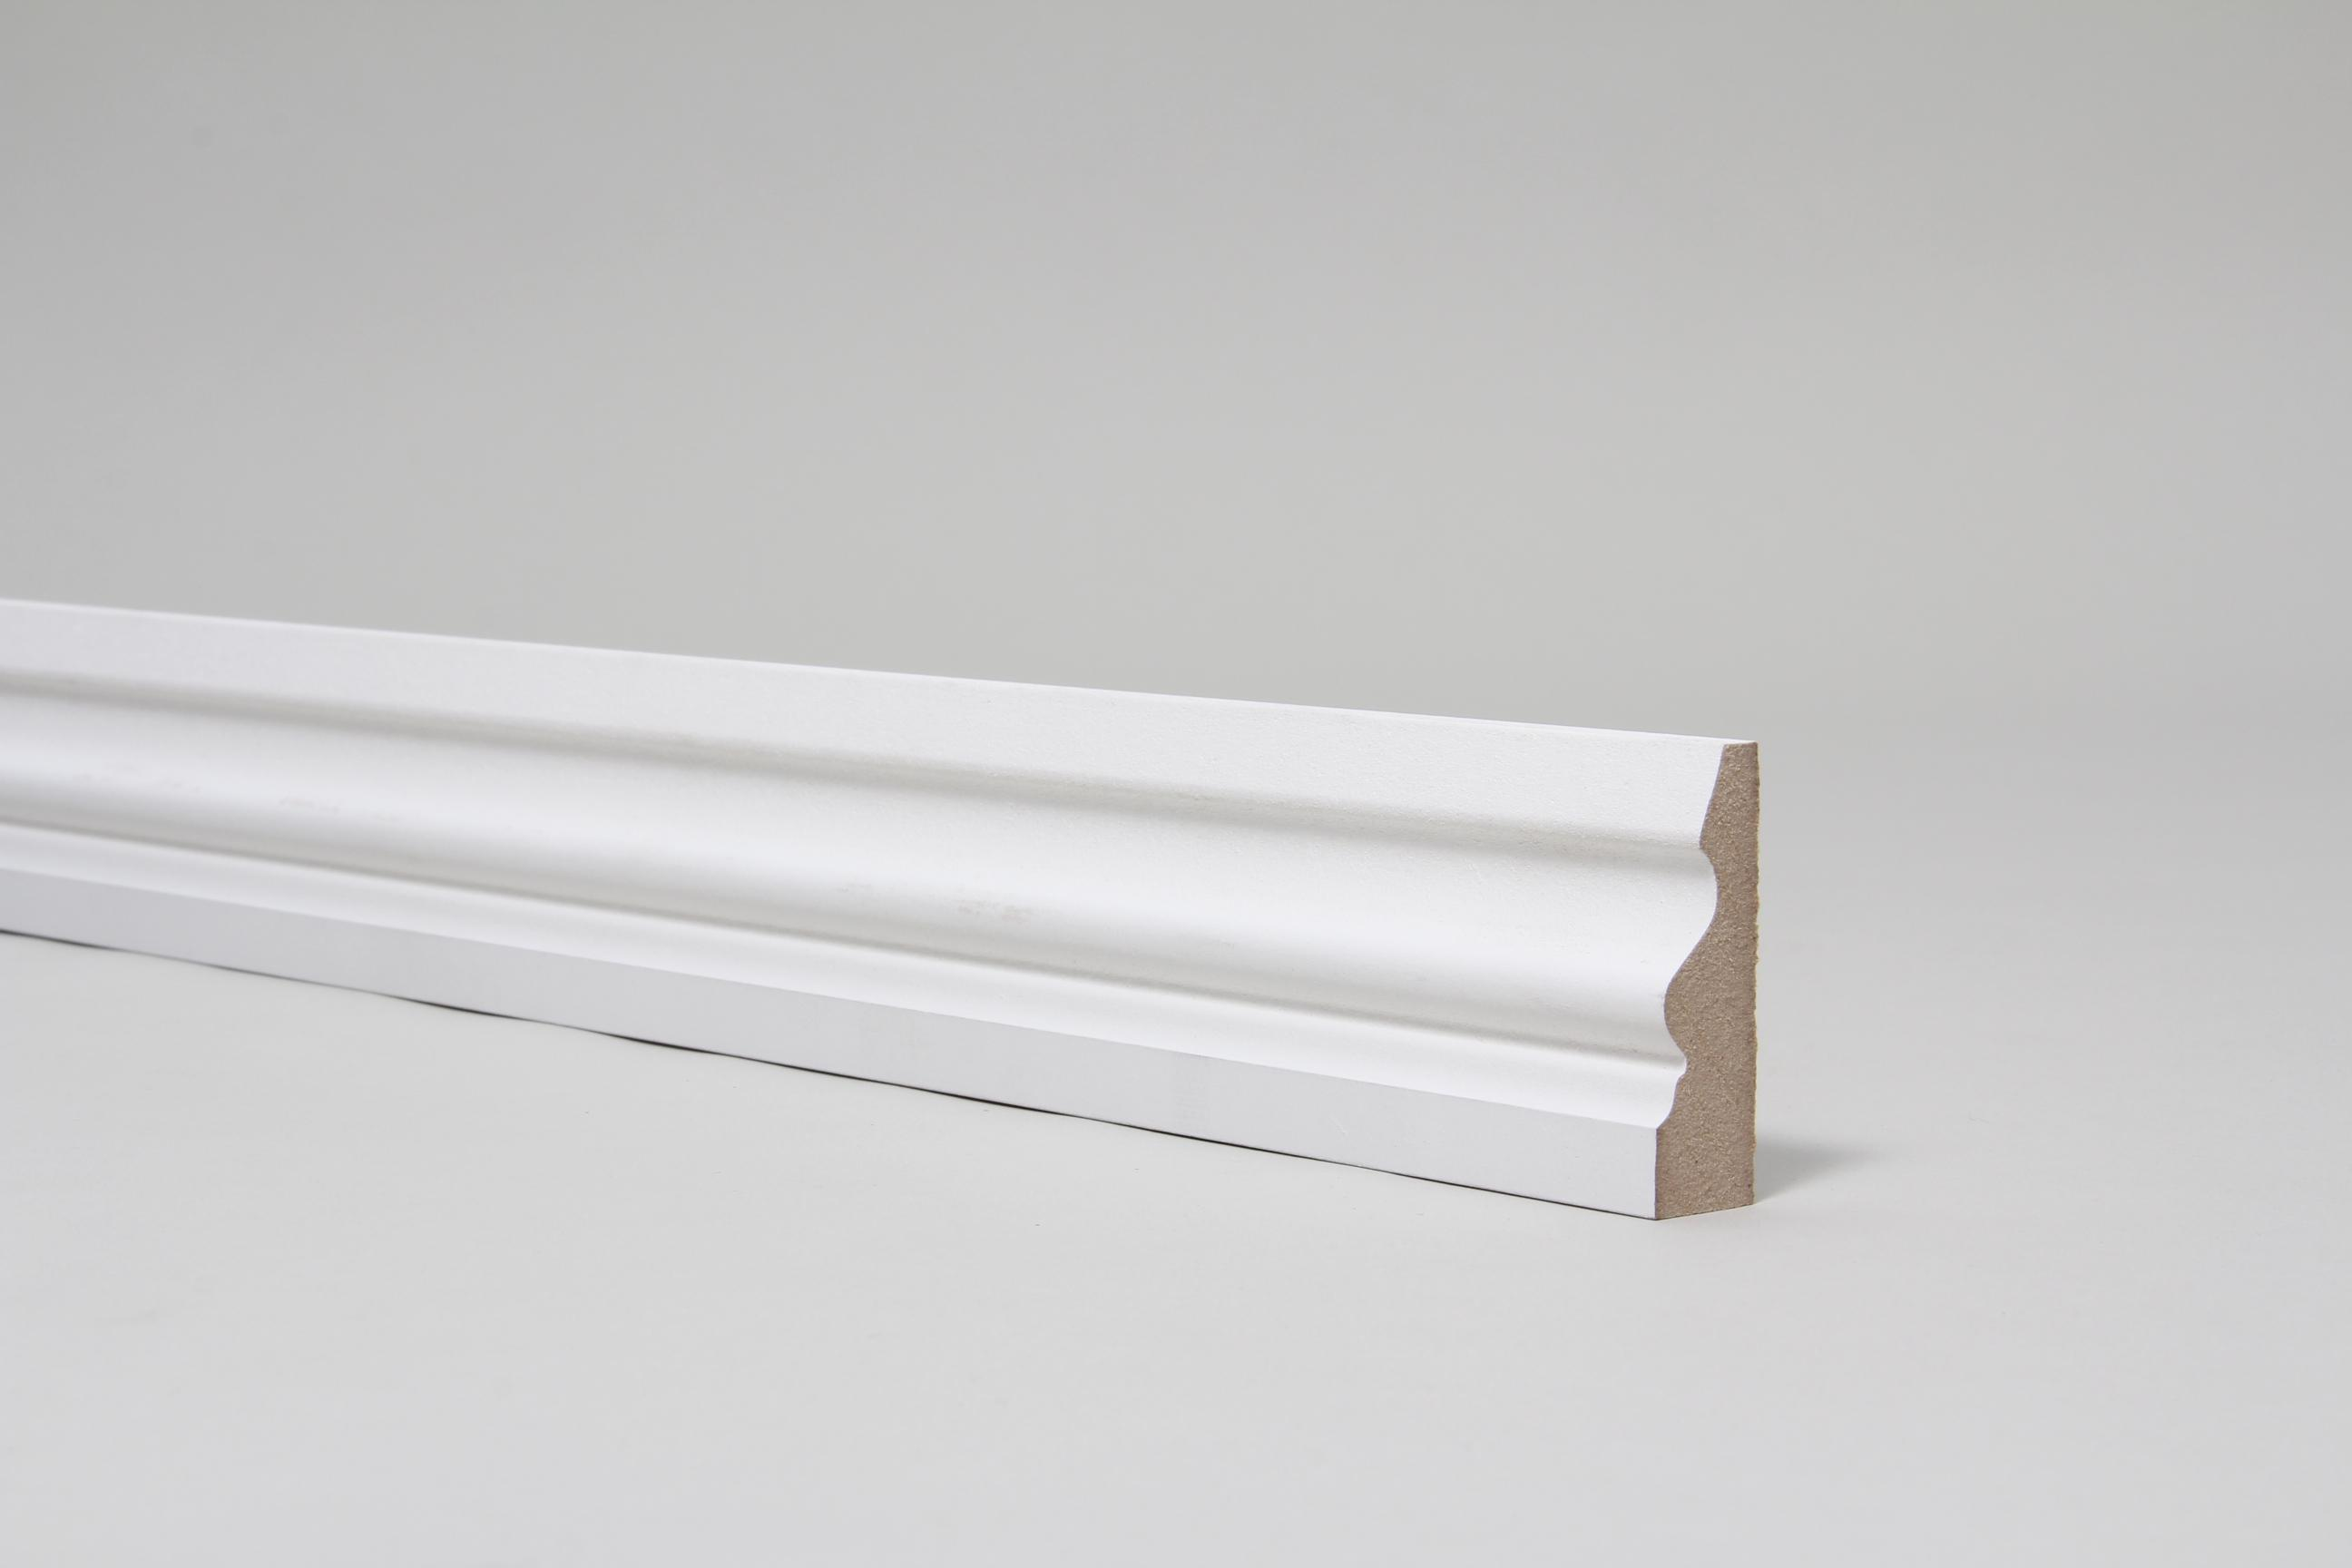 Ogee 4 18mm x 57mm x 4.4 Mtr Primed